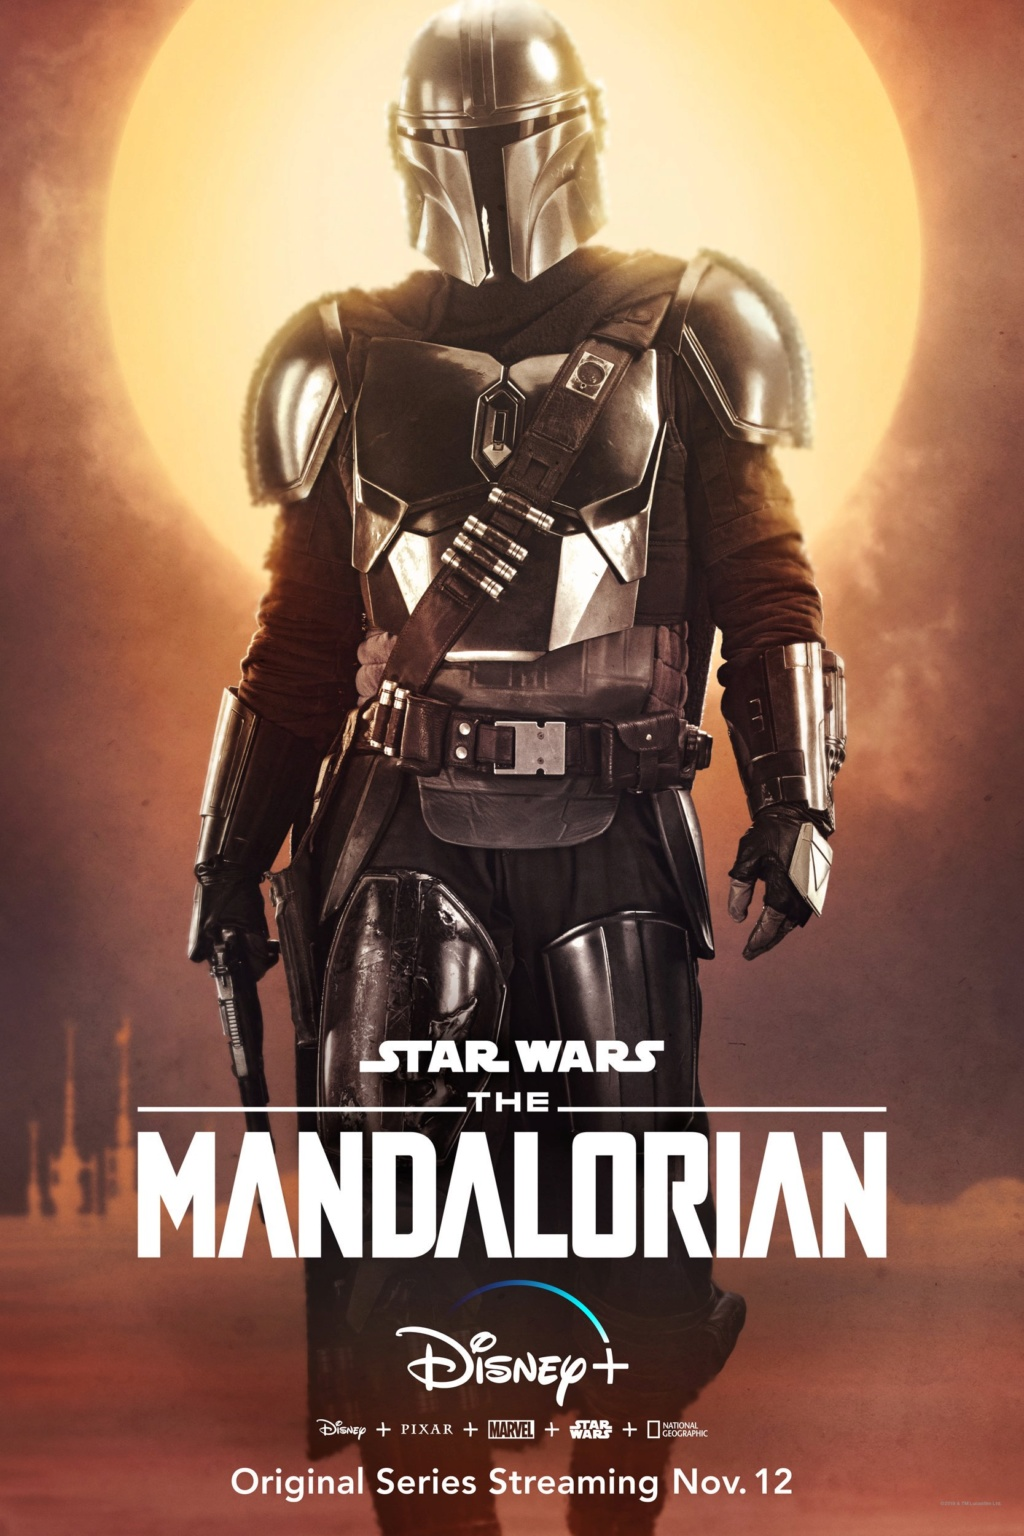 Les NEWS de la série Star Wars The Mandalorian - Page 3 Img_2045